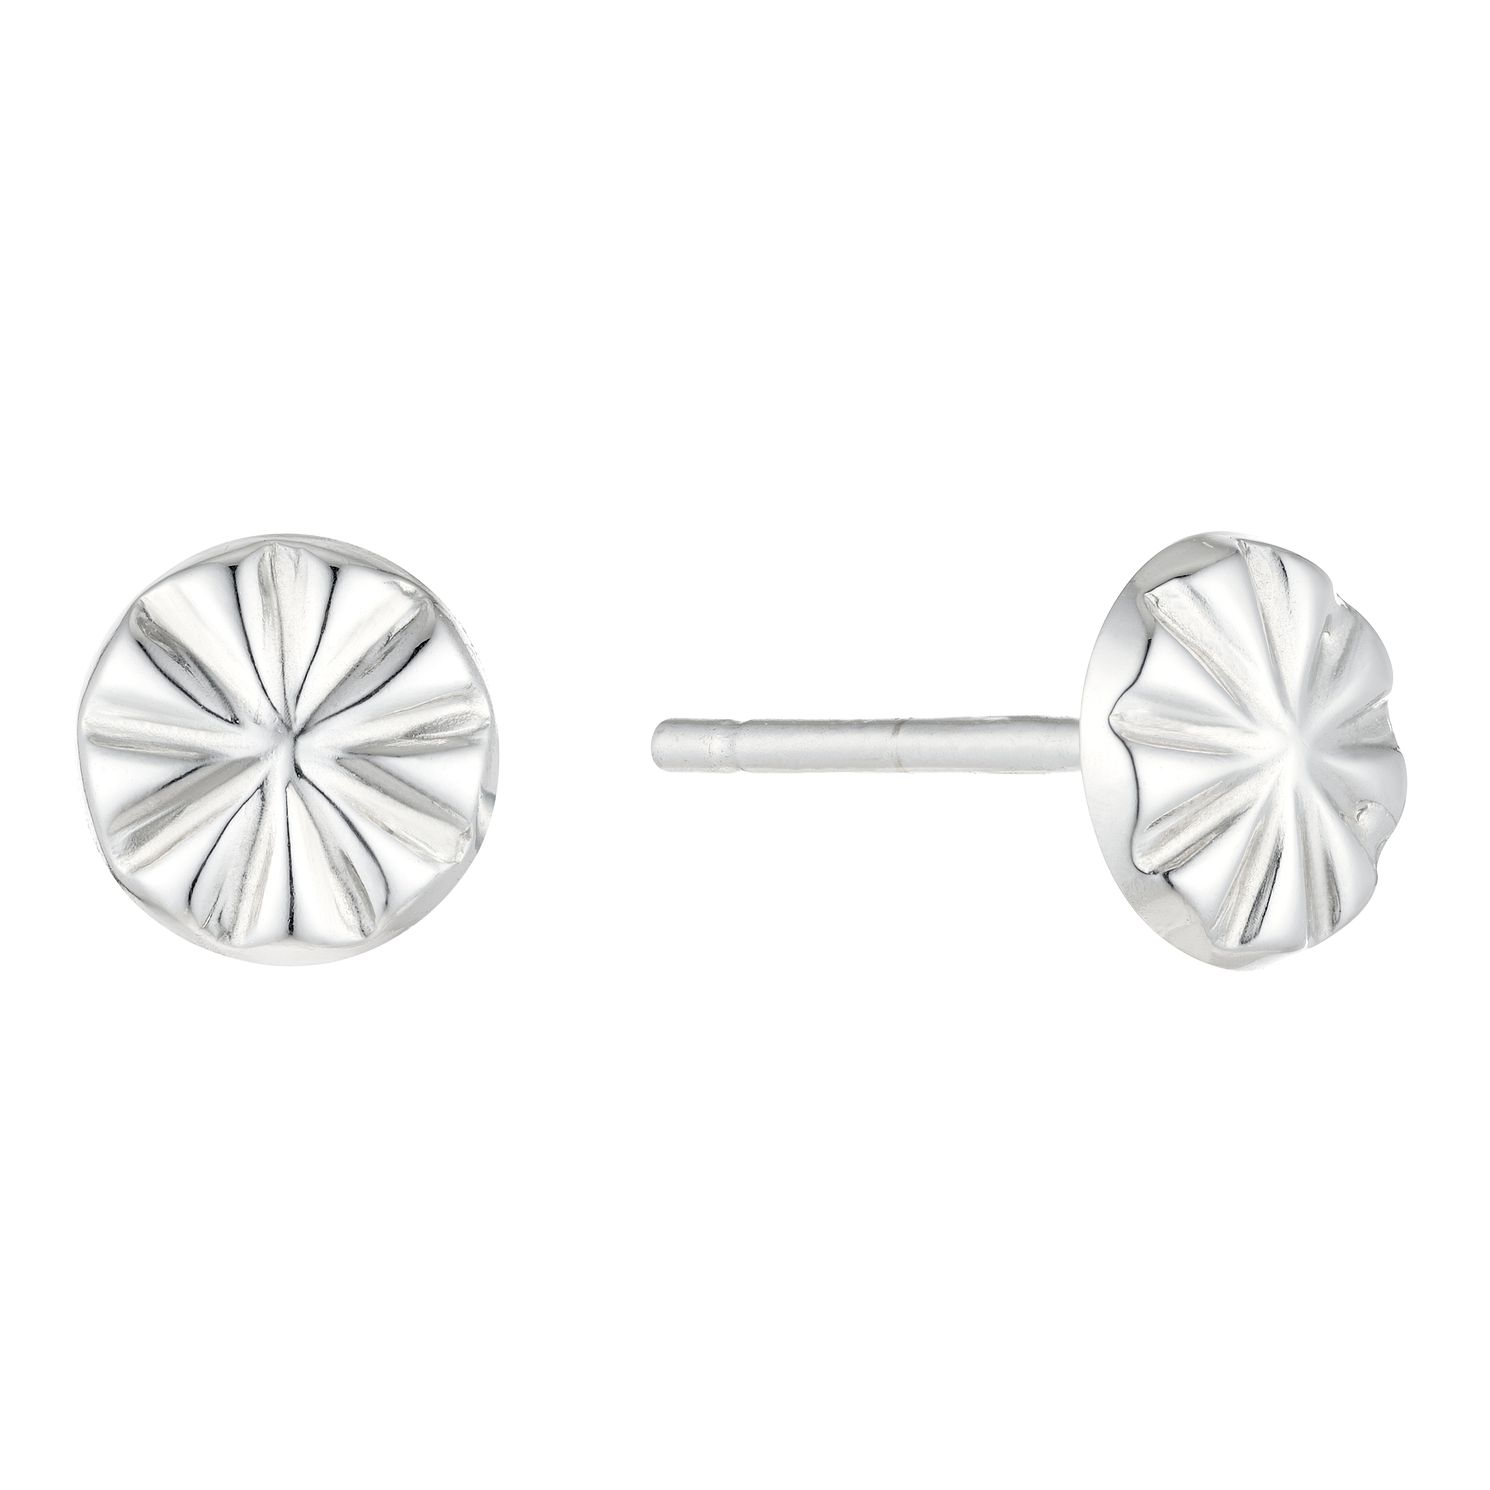 9ct White Gold Starburst Stud Earrings - Product number 5088844